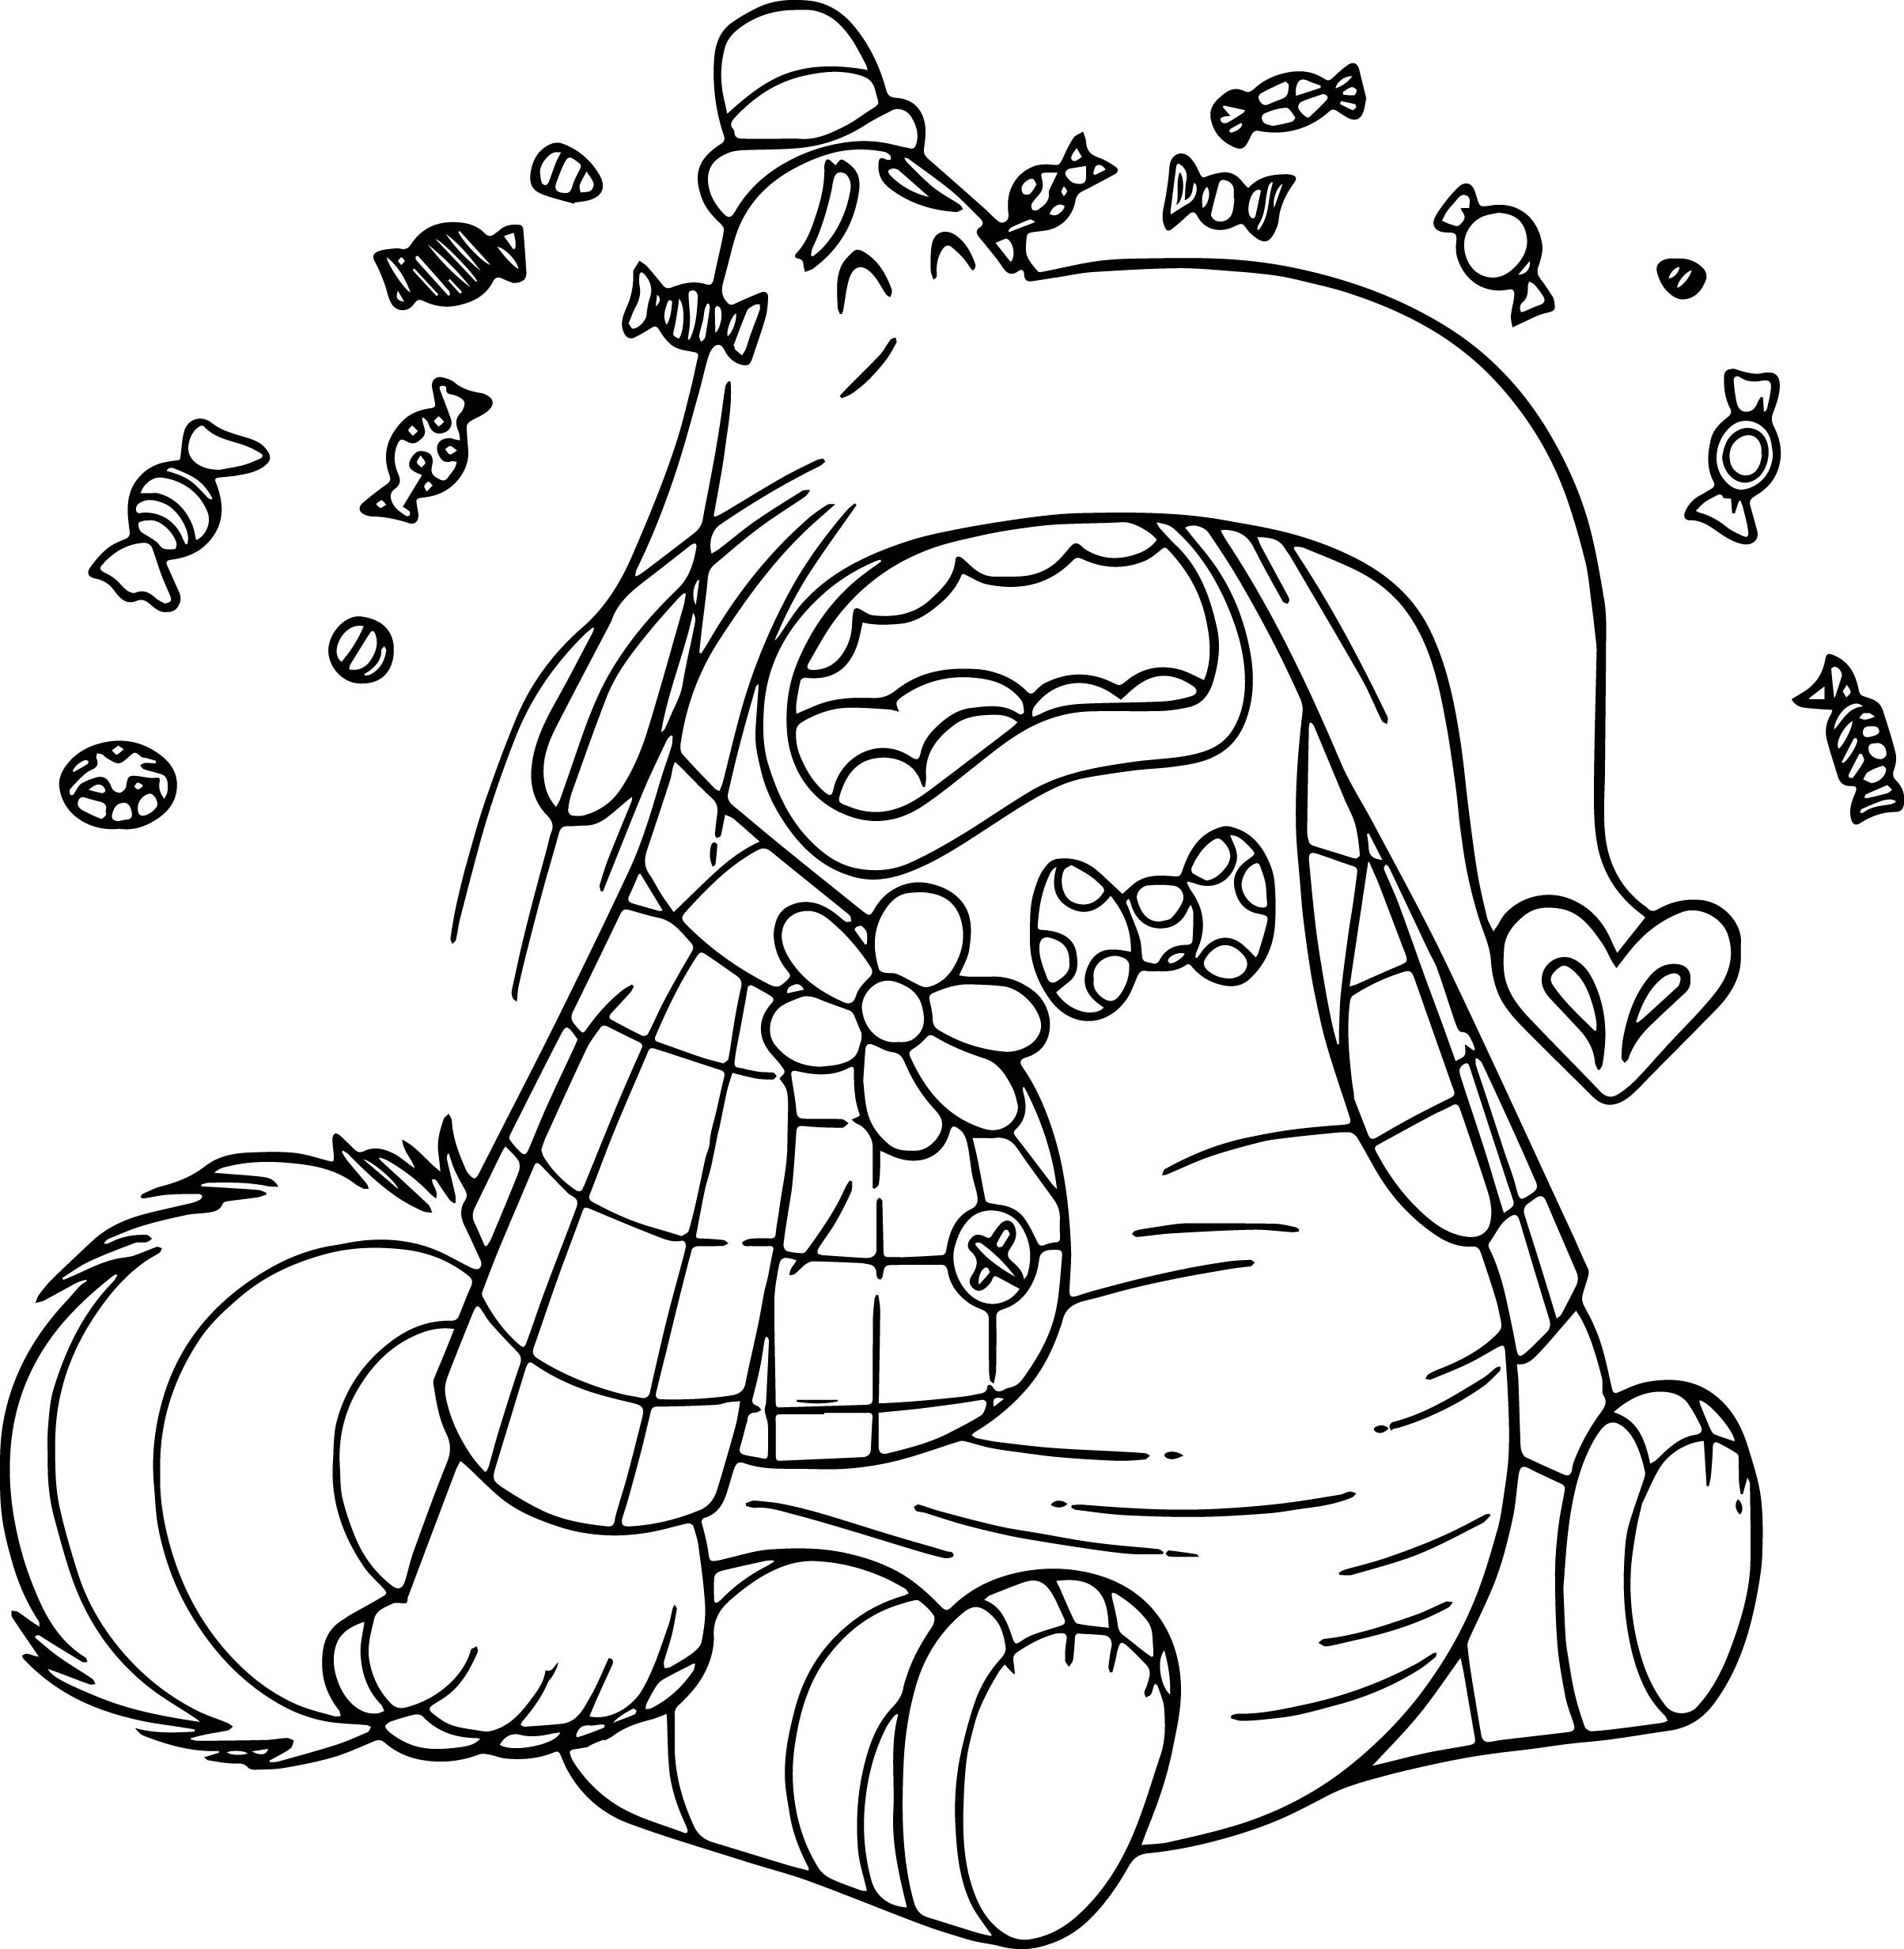 Inside Out Movie Coloring Pages At Getcolorings